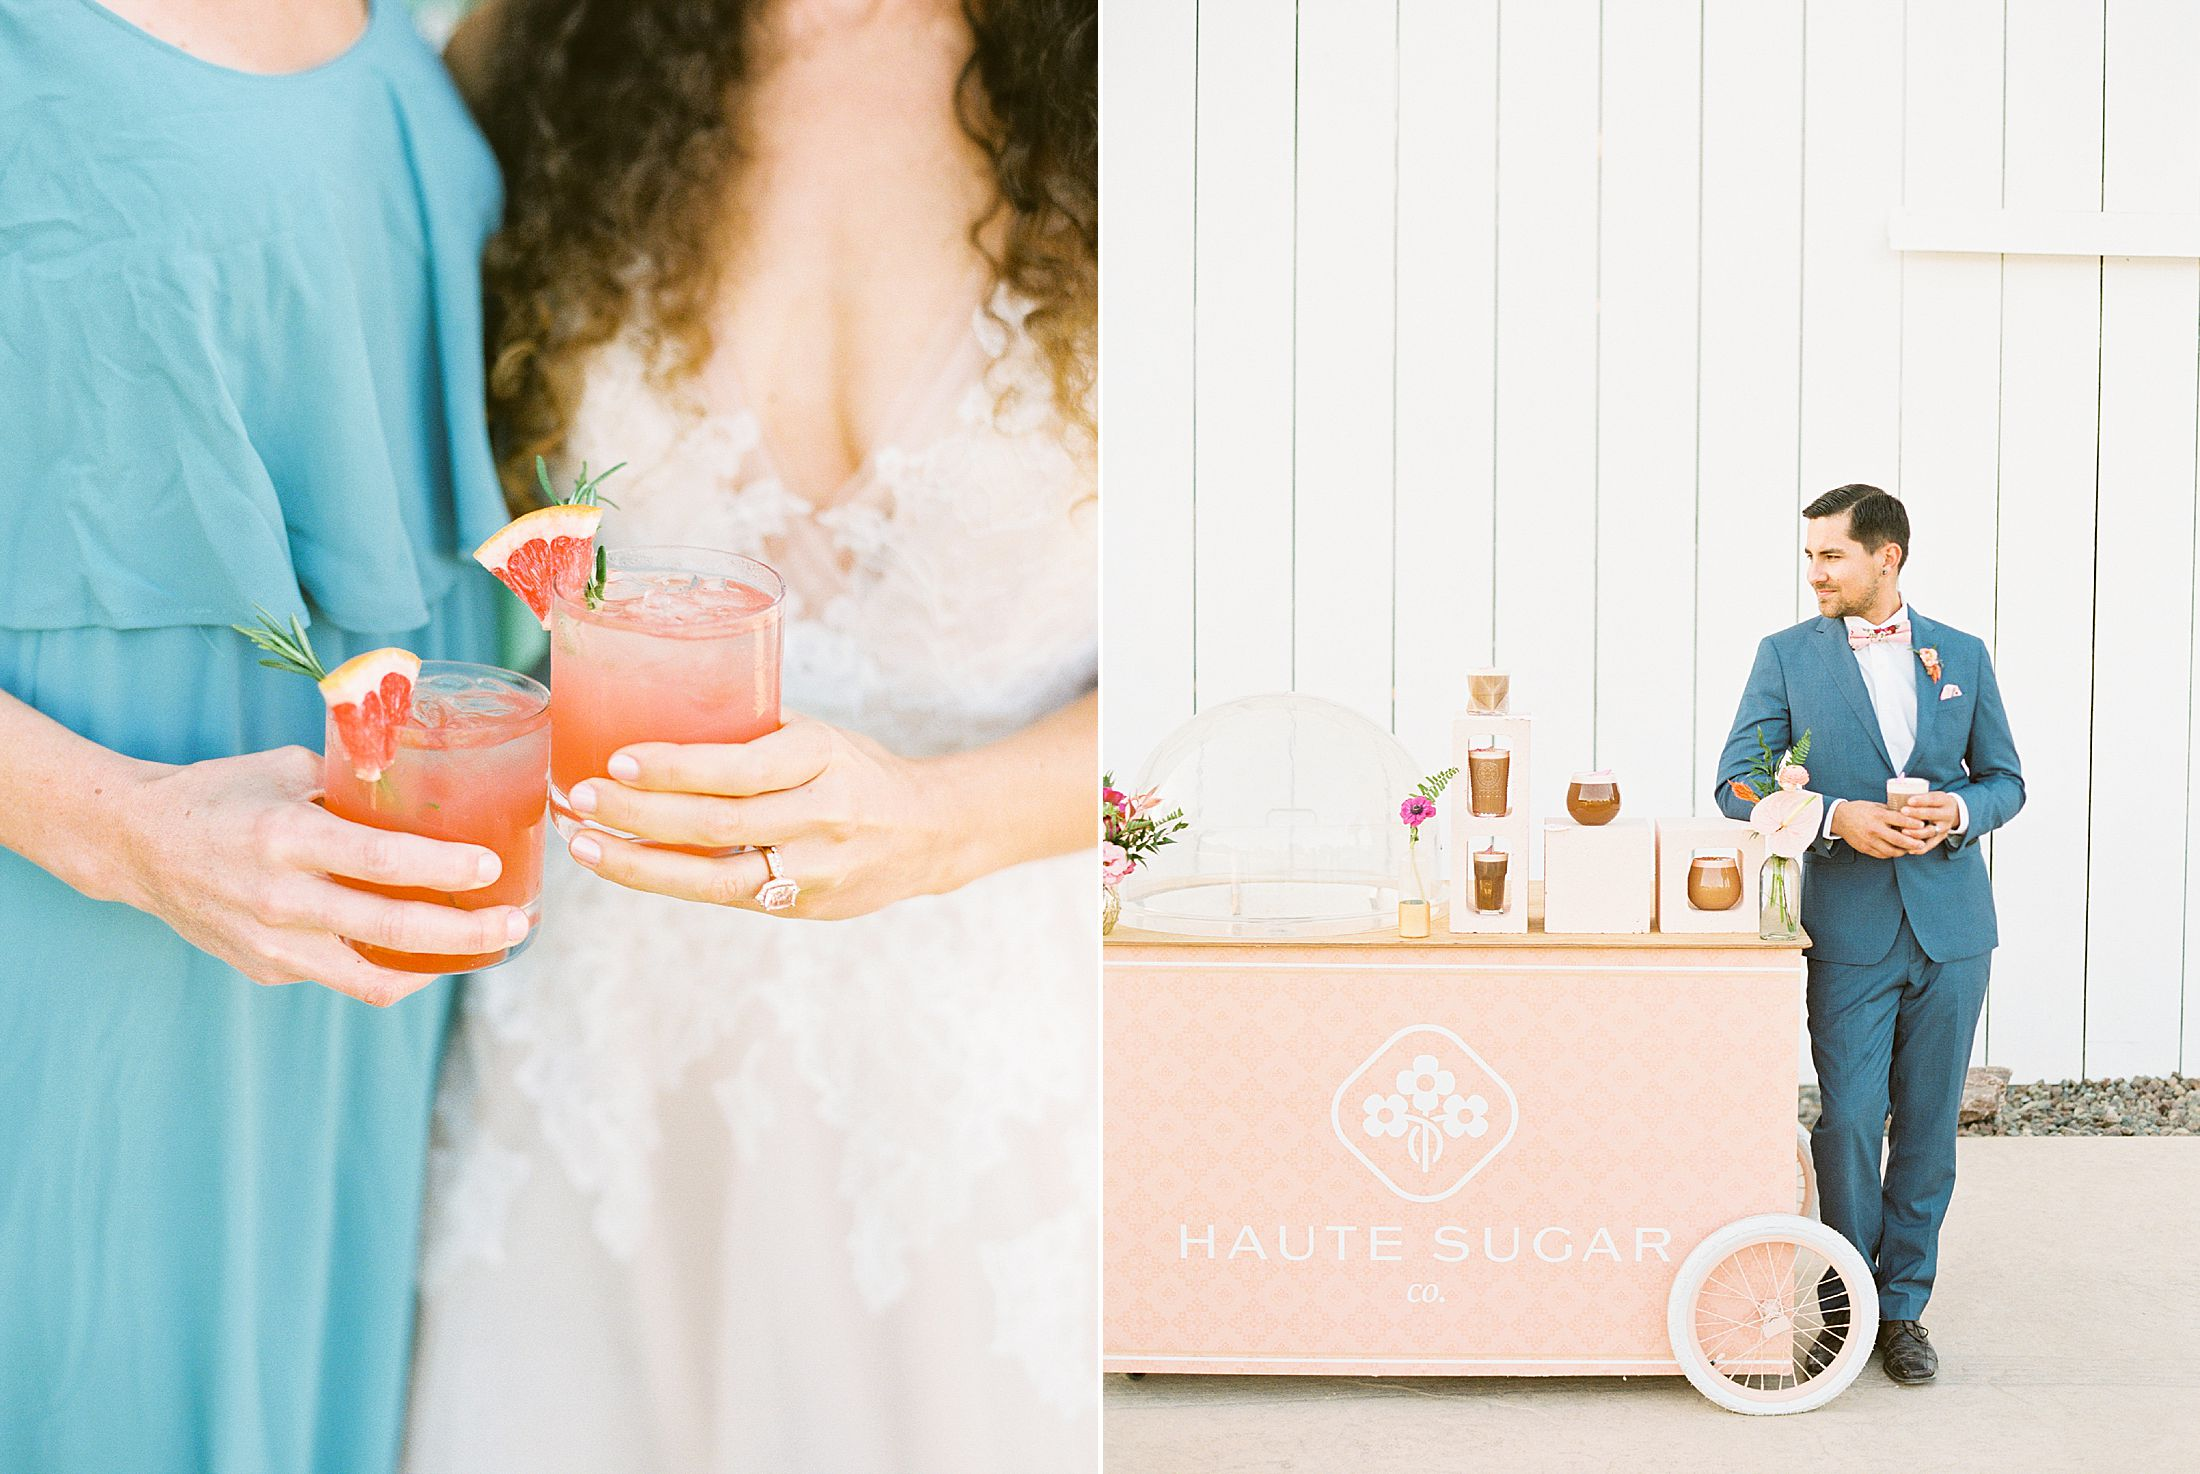 White Barn Edna Valley Wedding Inspiration - San Luis Obispo Wedding - Featured on Green Wedding Shoes - Ashley Baumgartner - FM Events SLO - SLO Wedding Photographer_0055.jpg